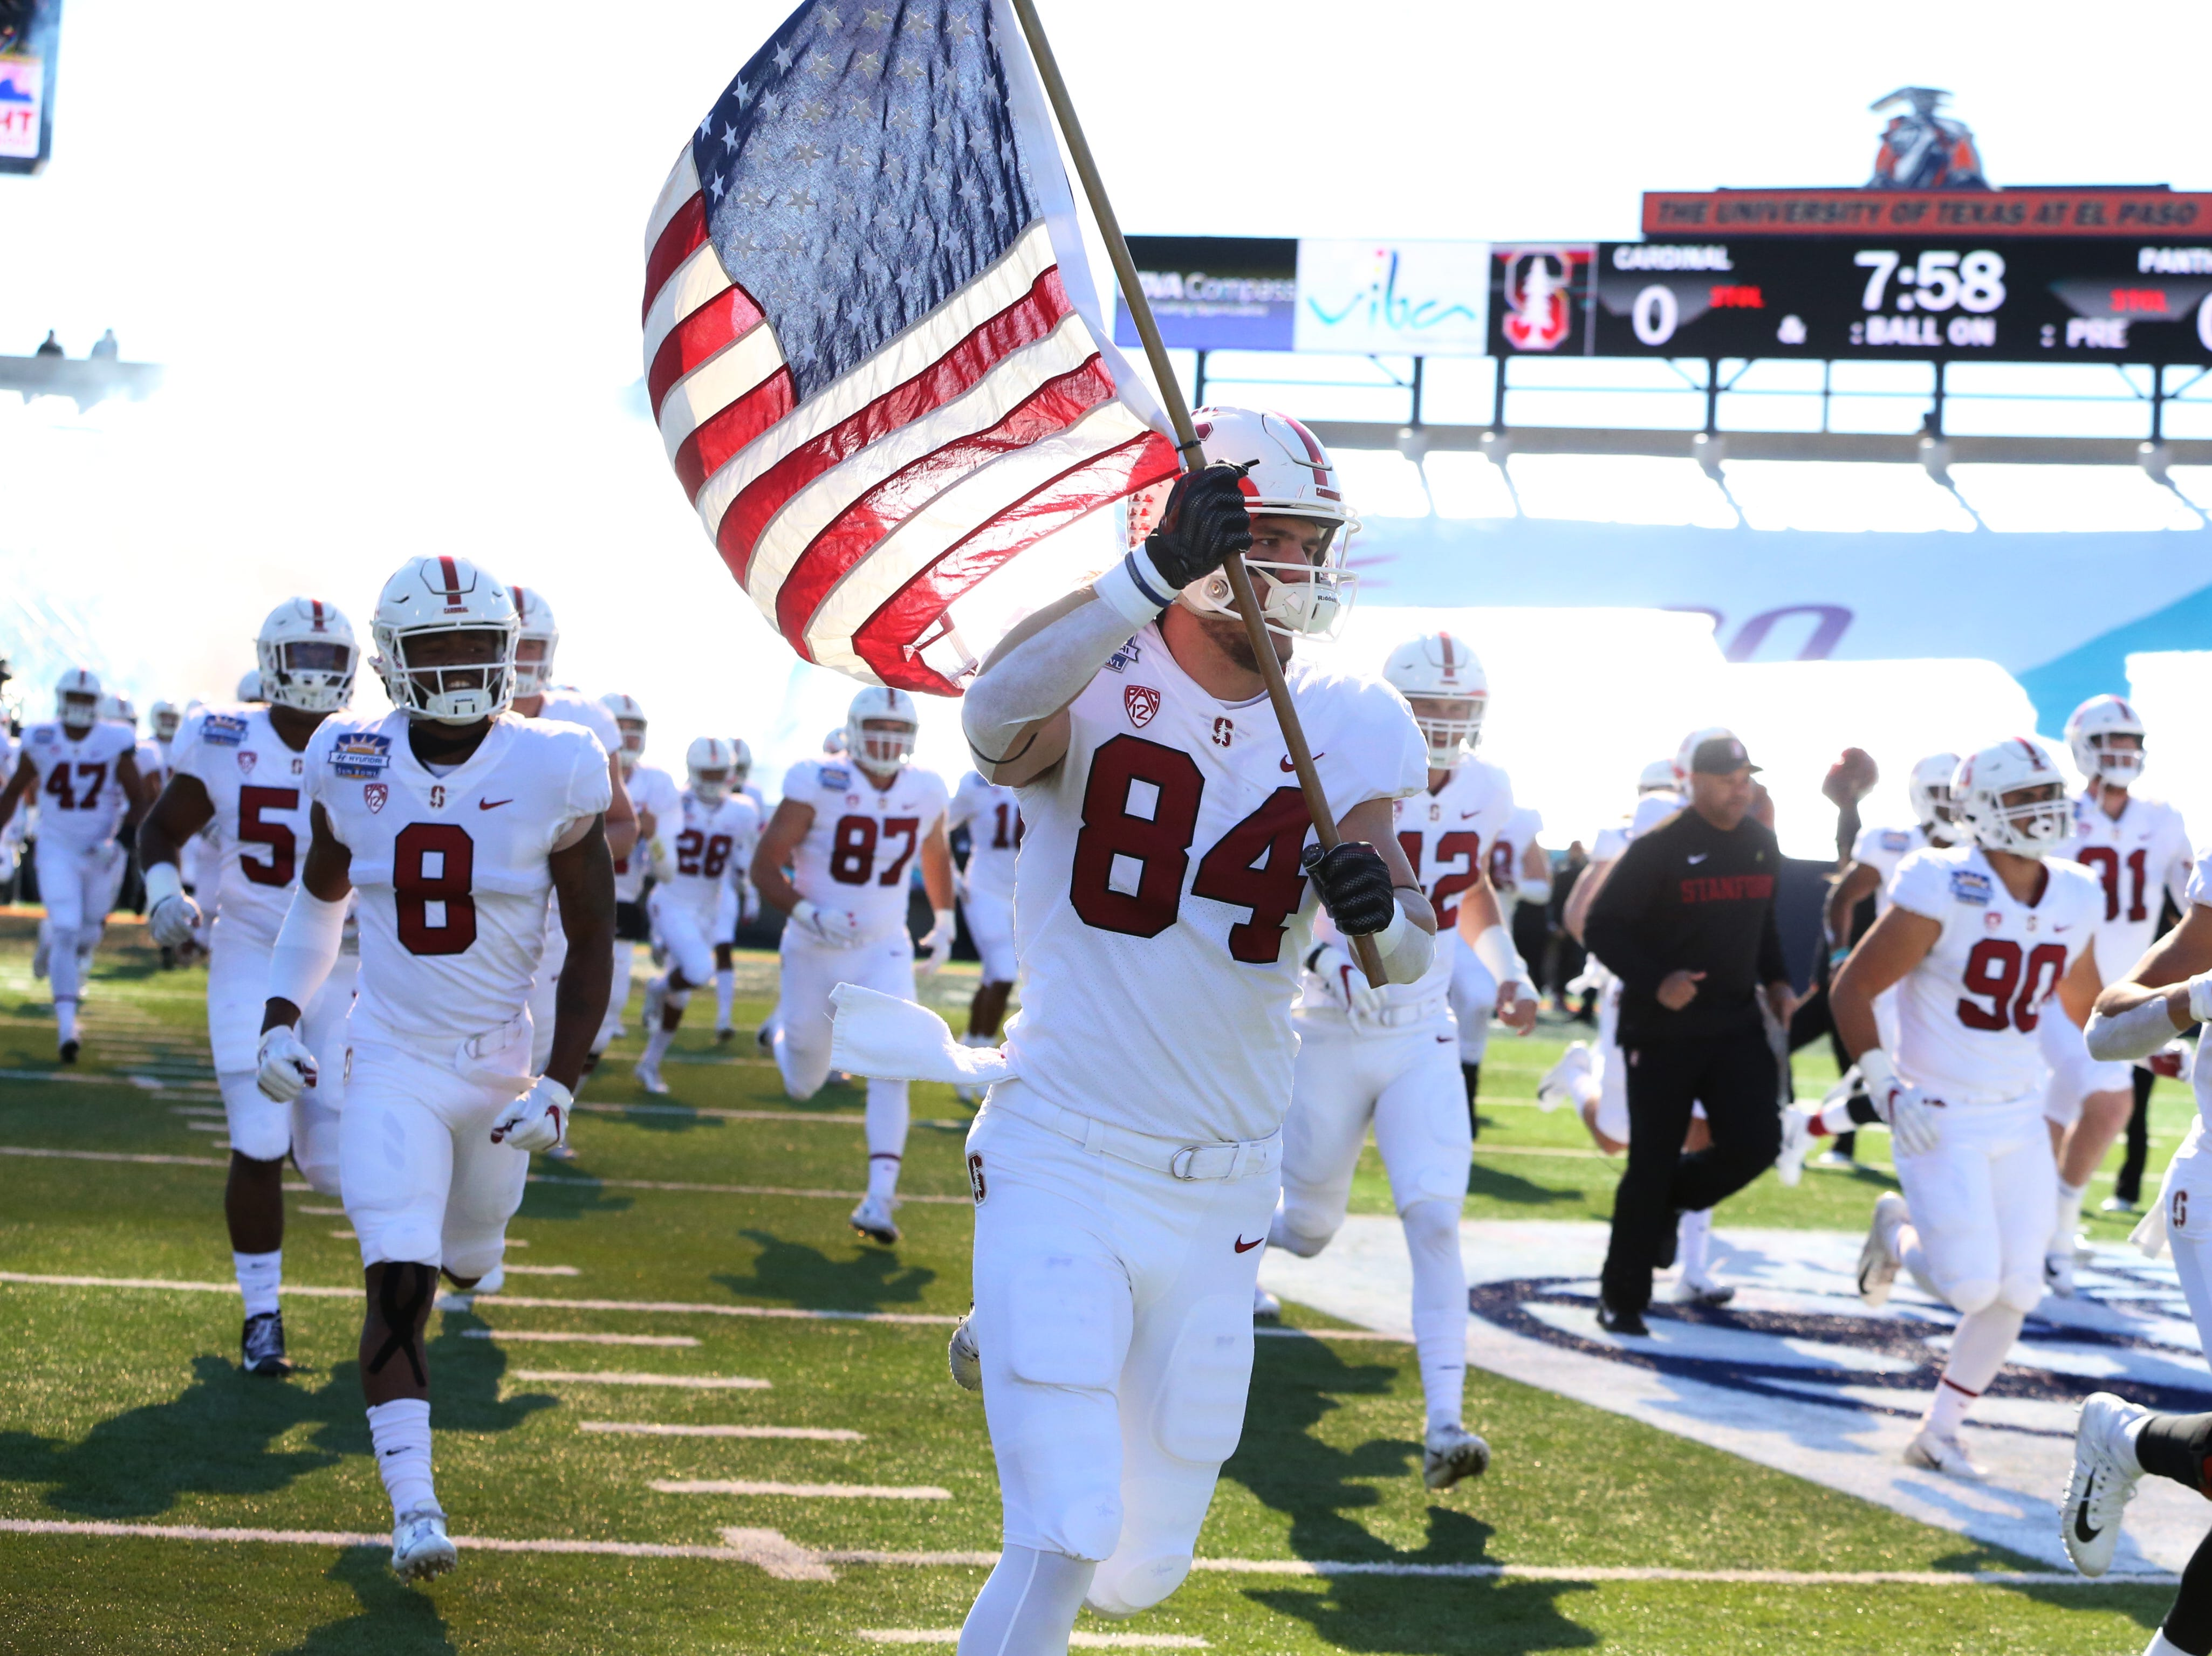 The Stanford Cardinal take the field against the Pitt Panthers Monday in the 85th Hyundai Sun Bowl game.